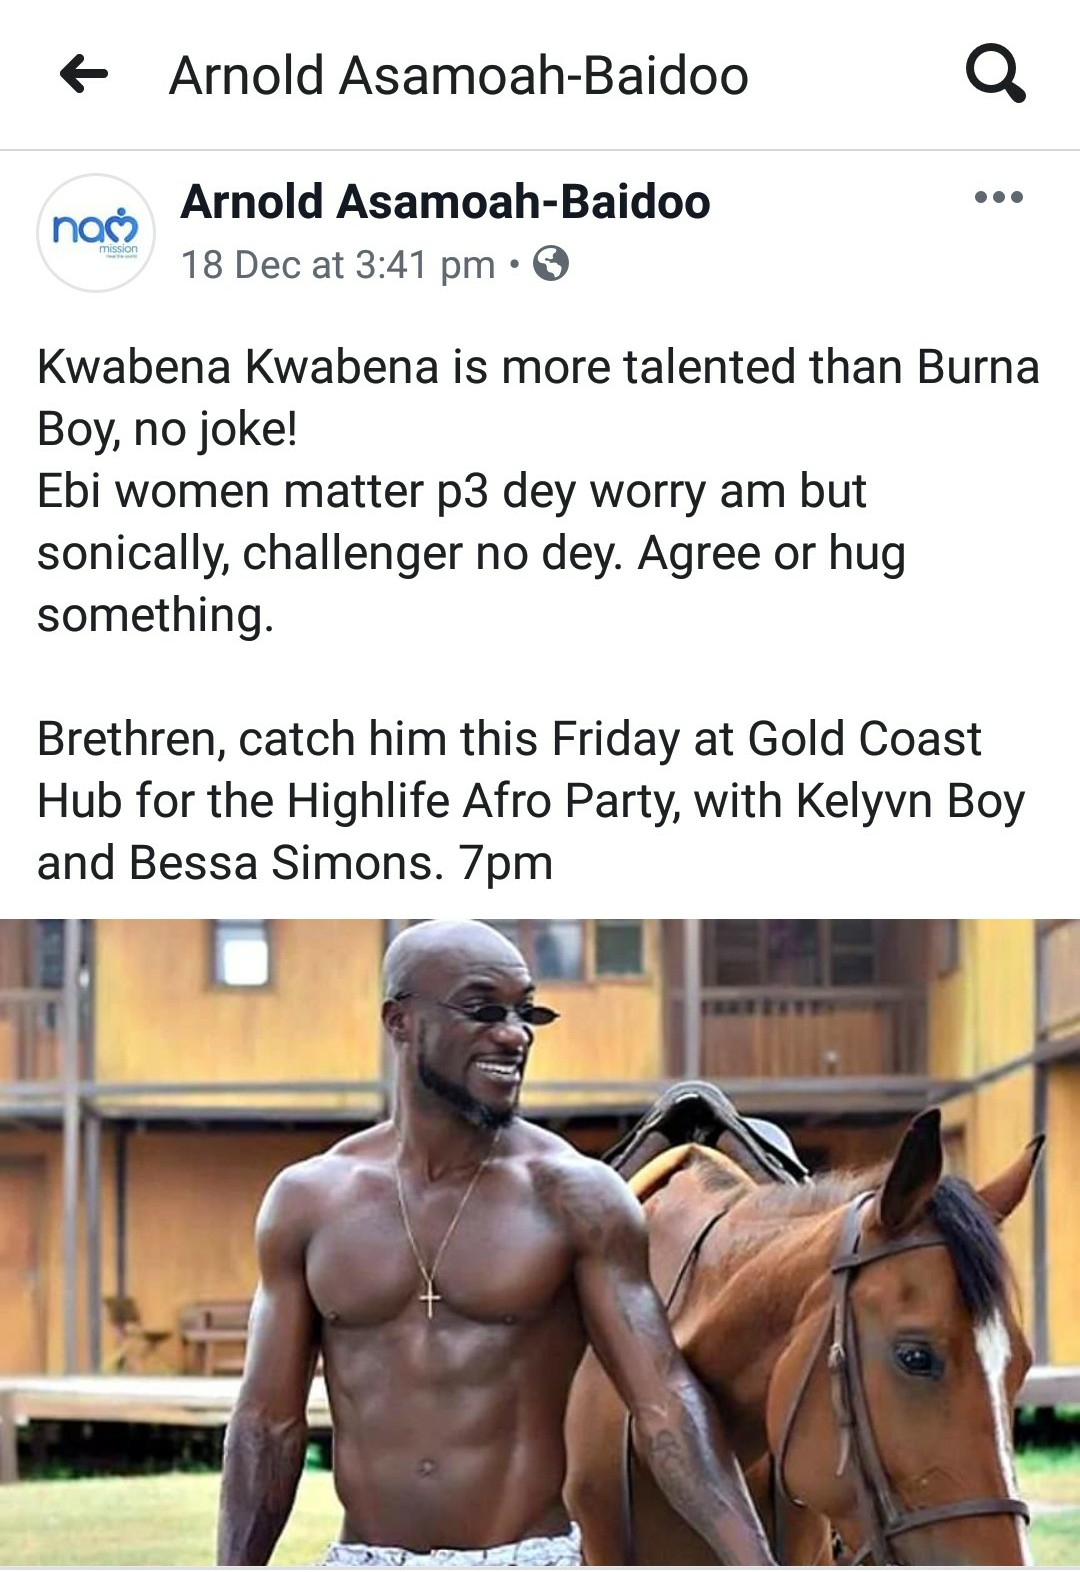 'Kwabena Kwabena is more Talented than Burna Boy' - Ghanaian Journalist says